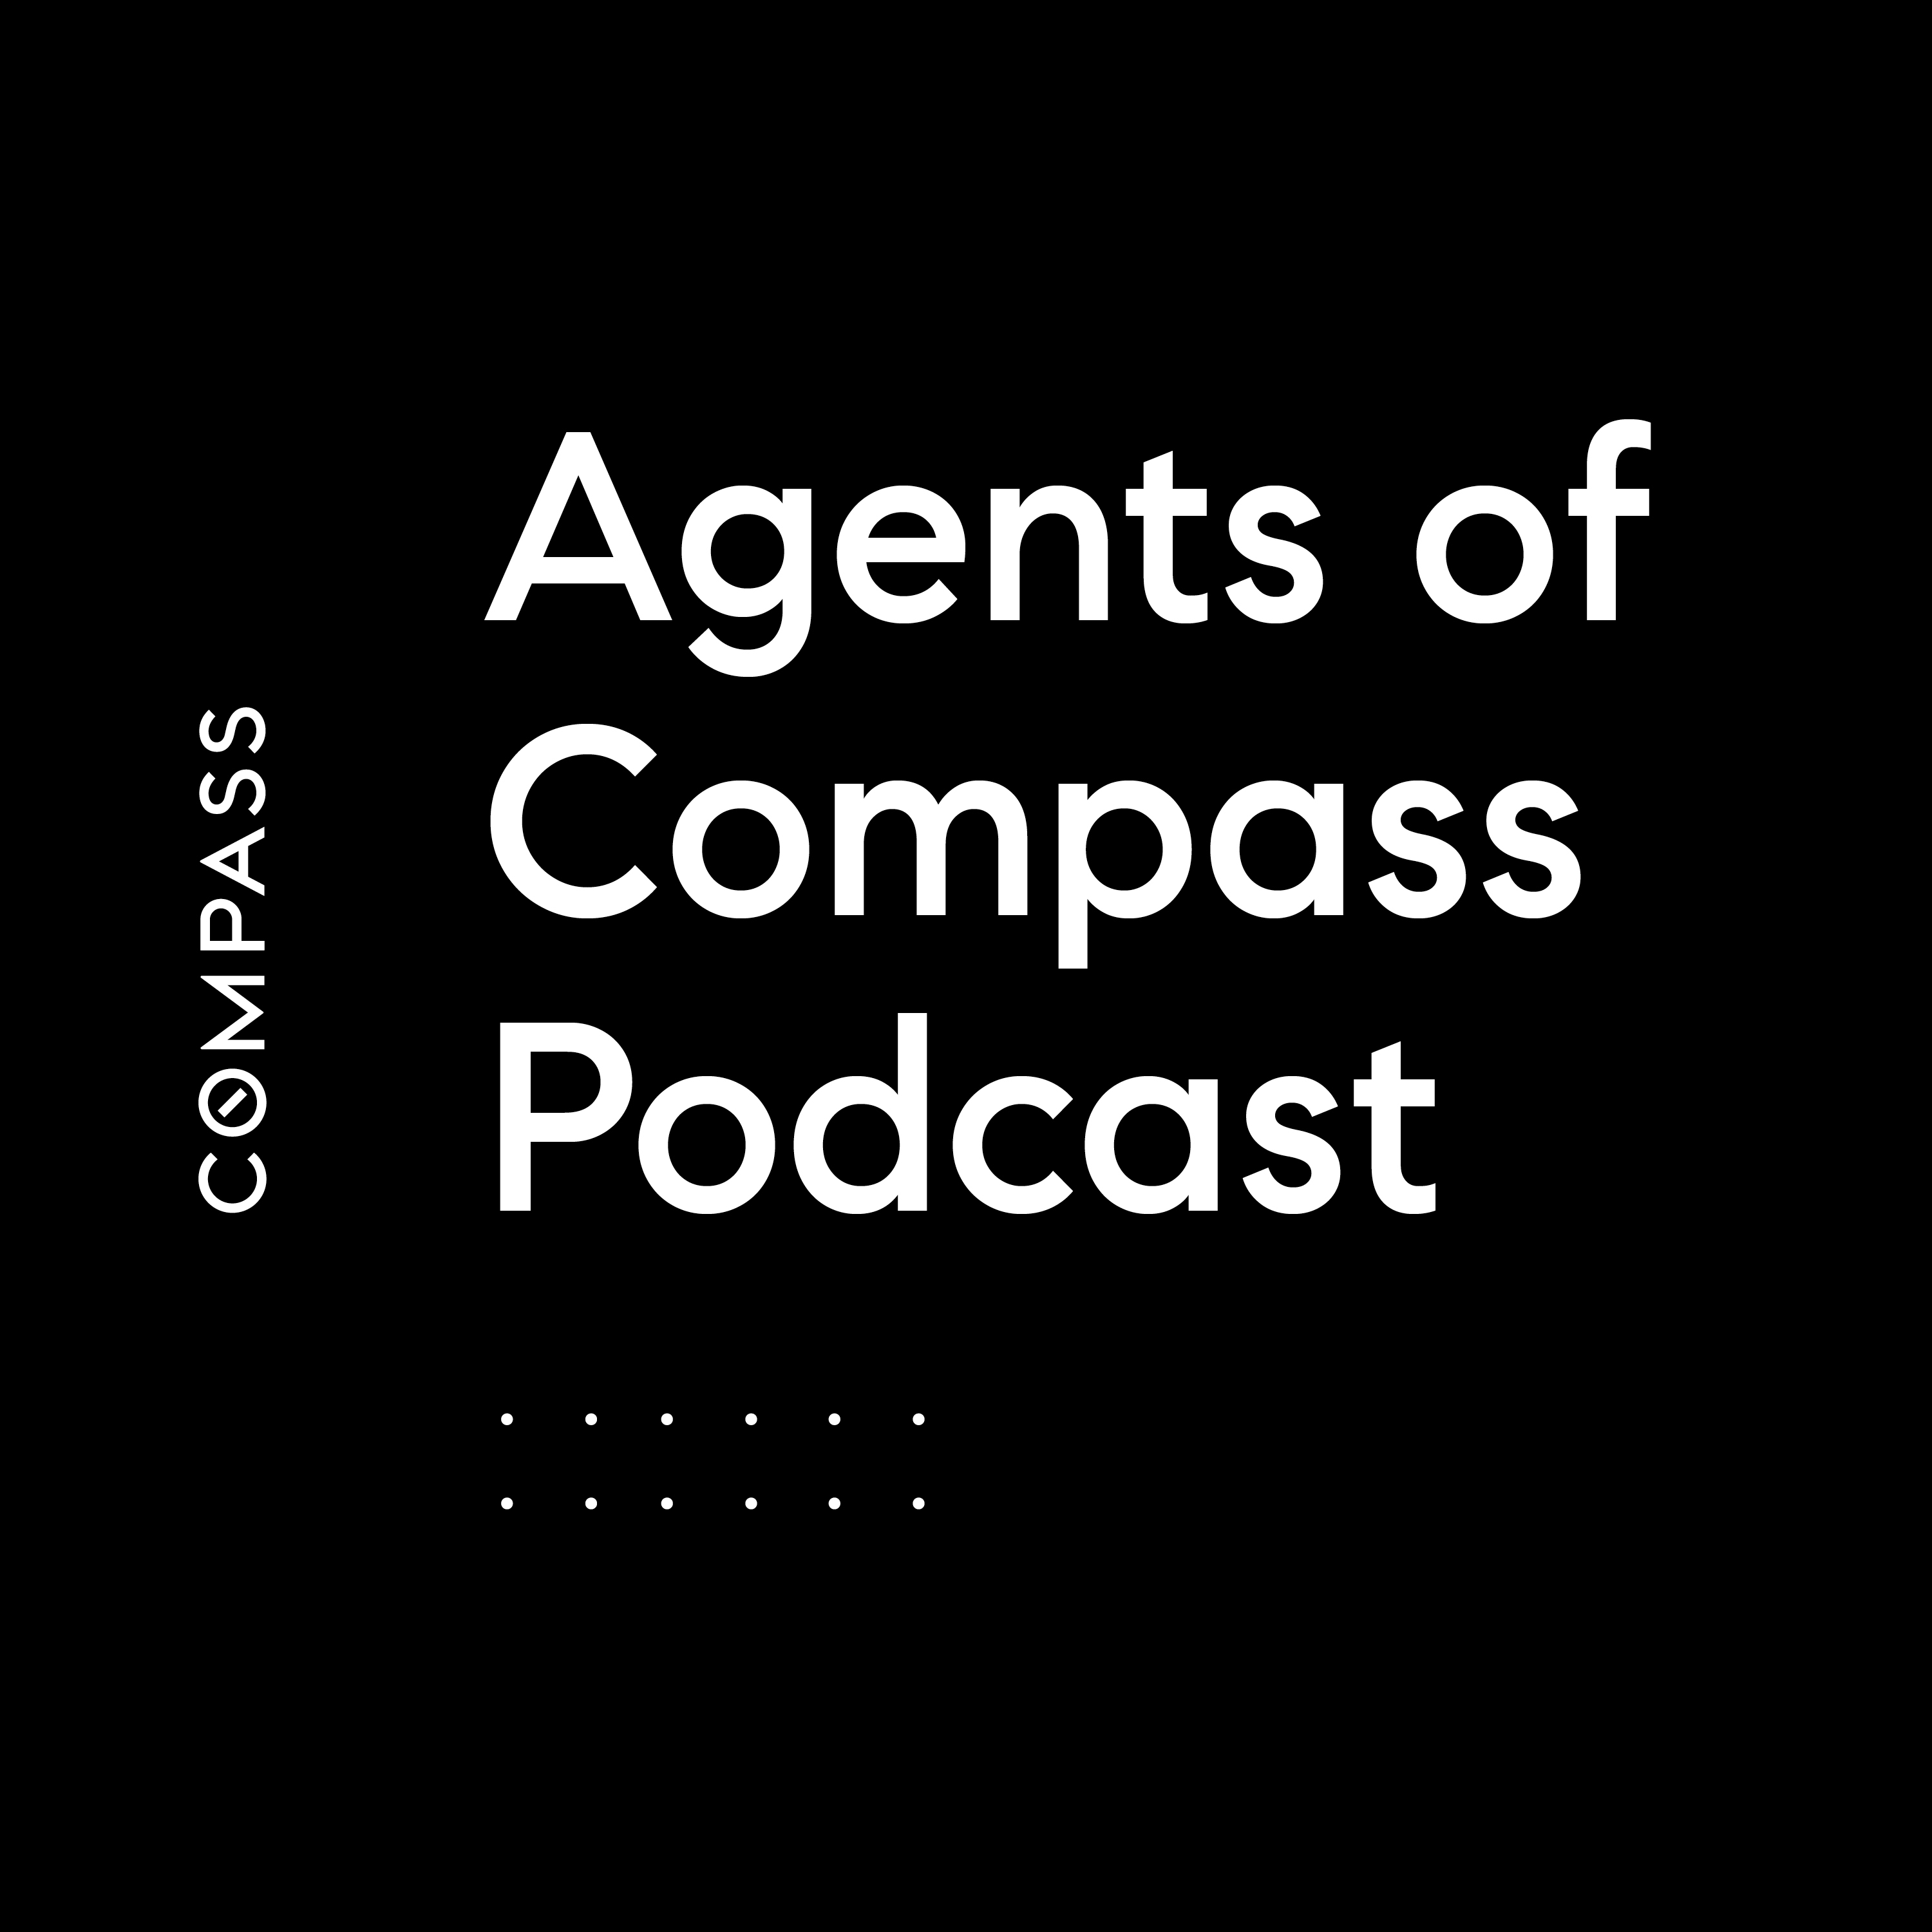 Agents of Compass Podcast show art